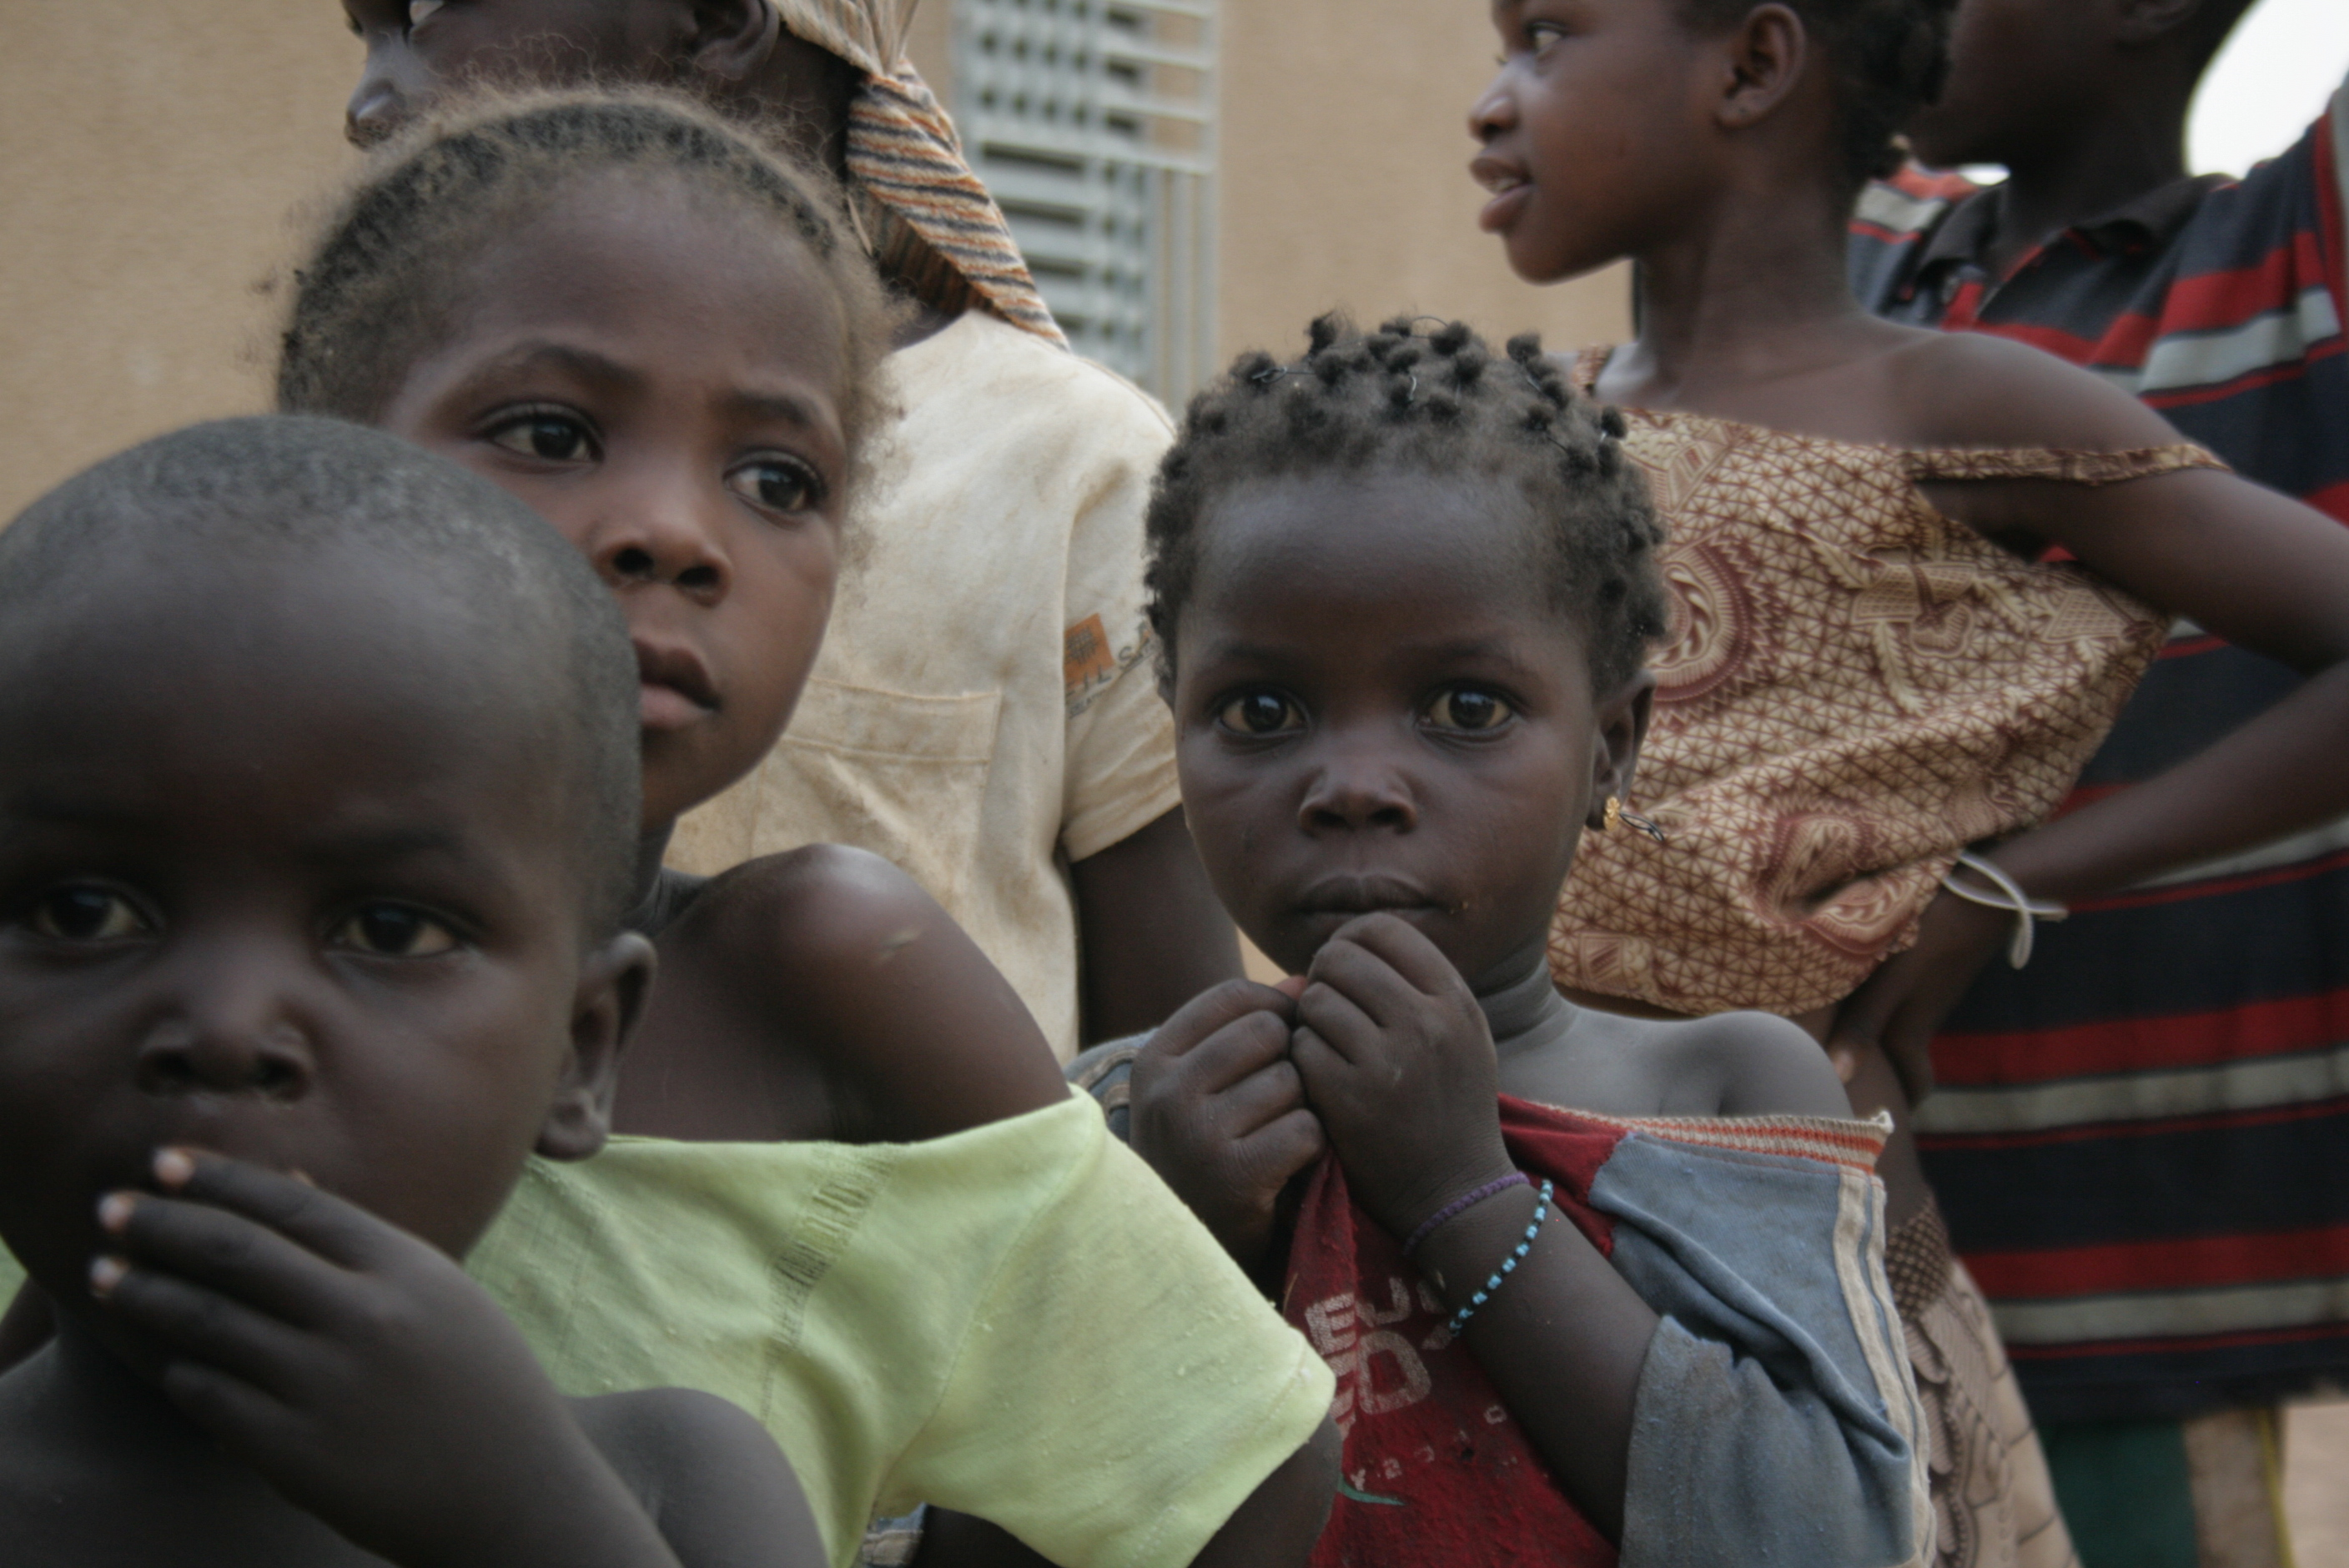 Children in Burkina Faso